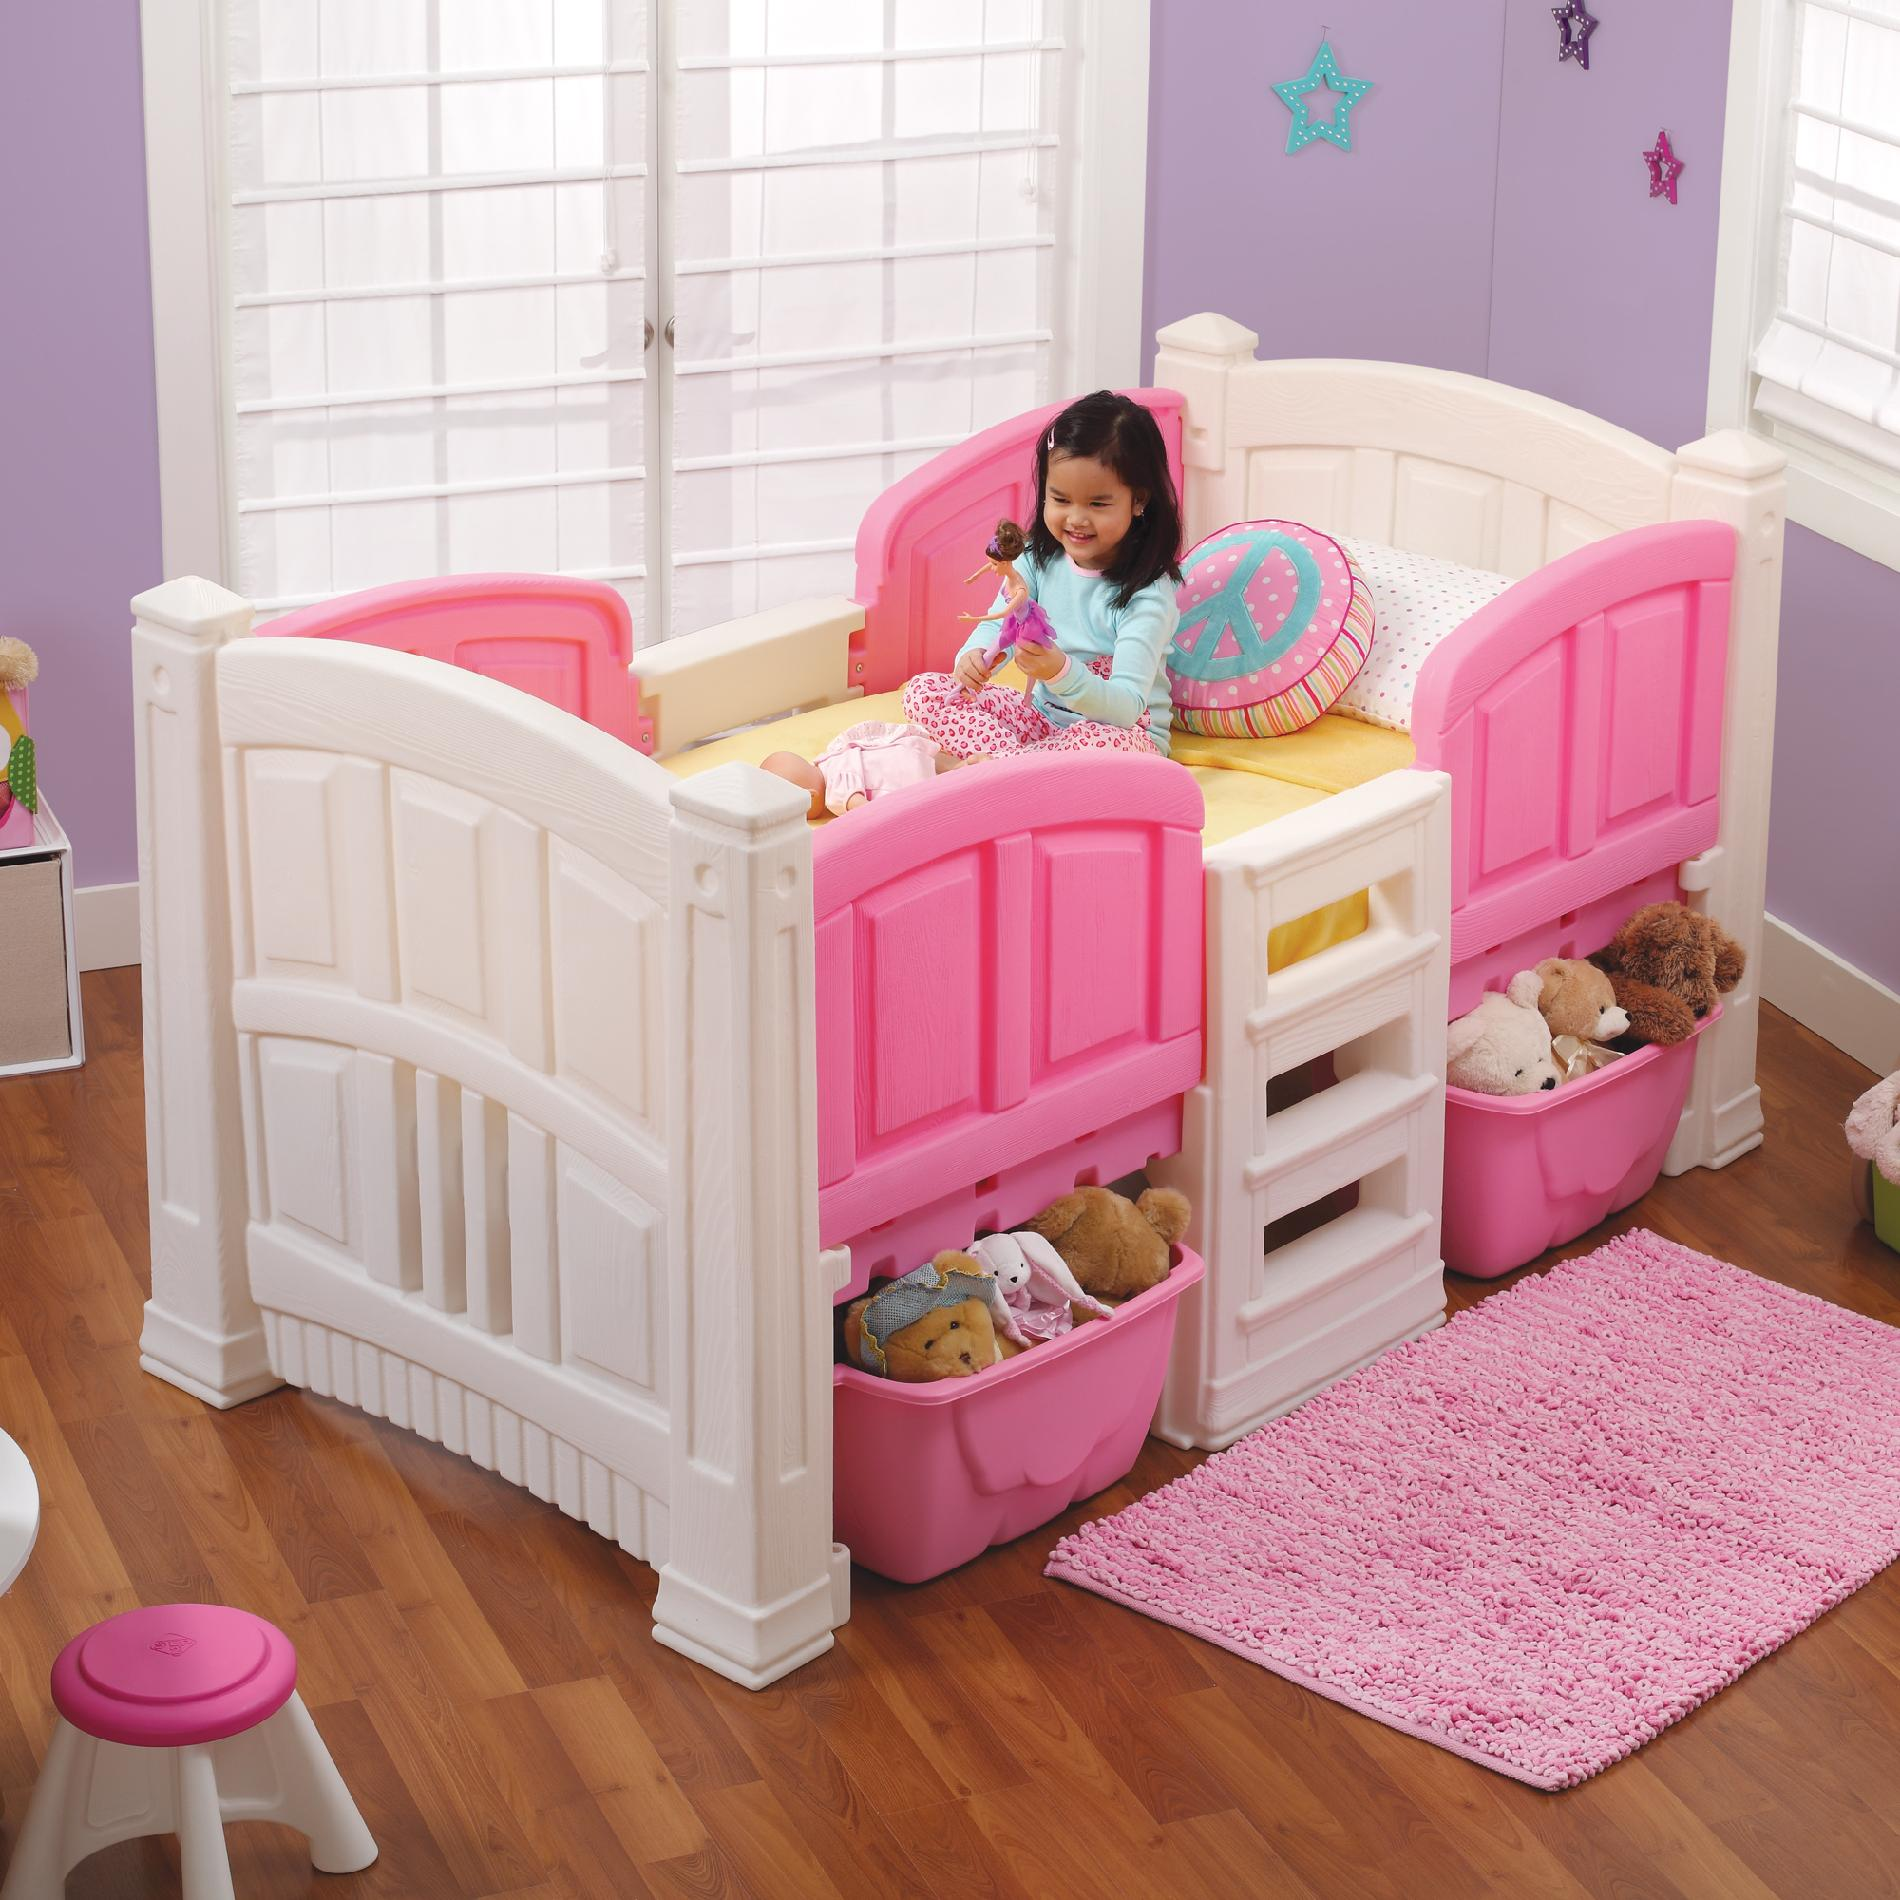 children s stuffed animal chairs tufted velvet chair step 2 girl's loft & storage twin bed - baby toddler furniture beds